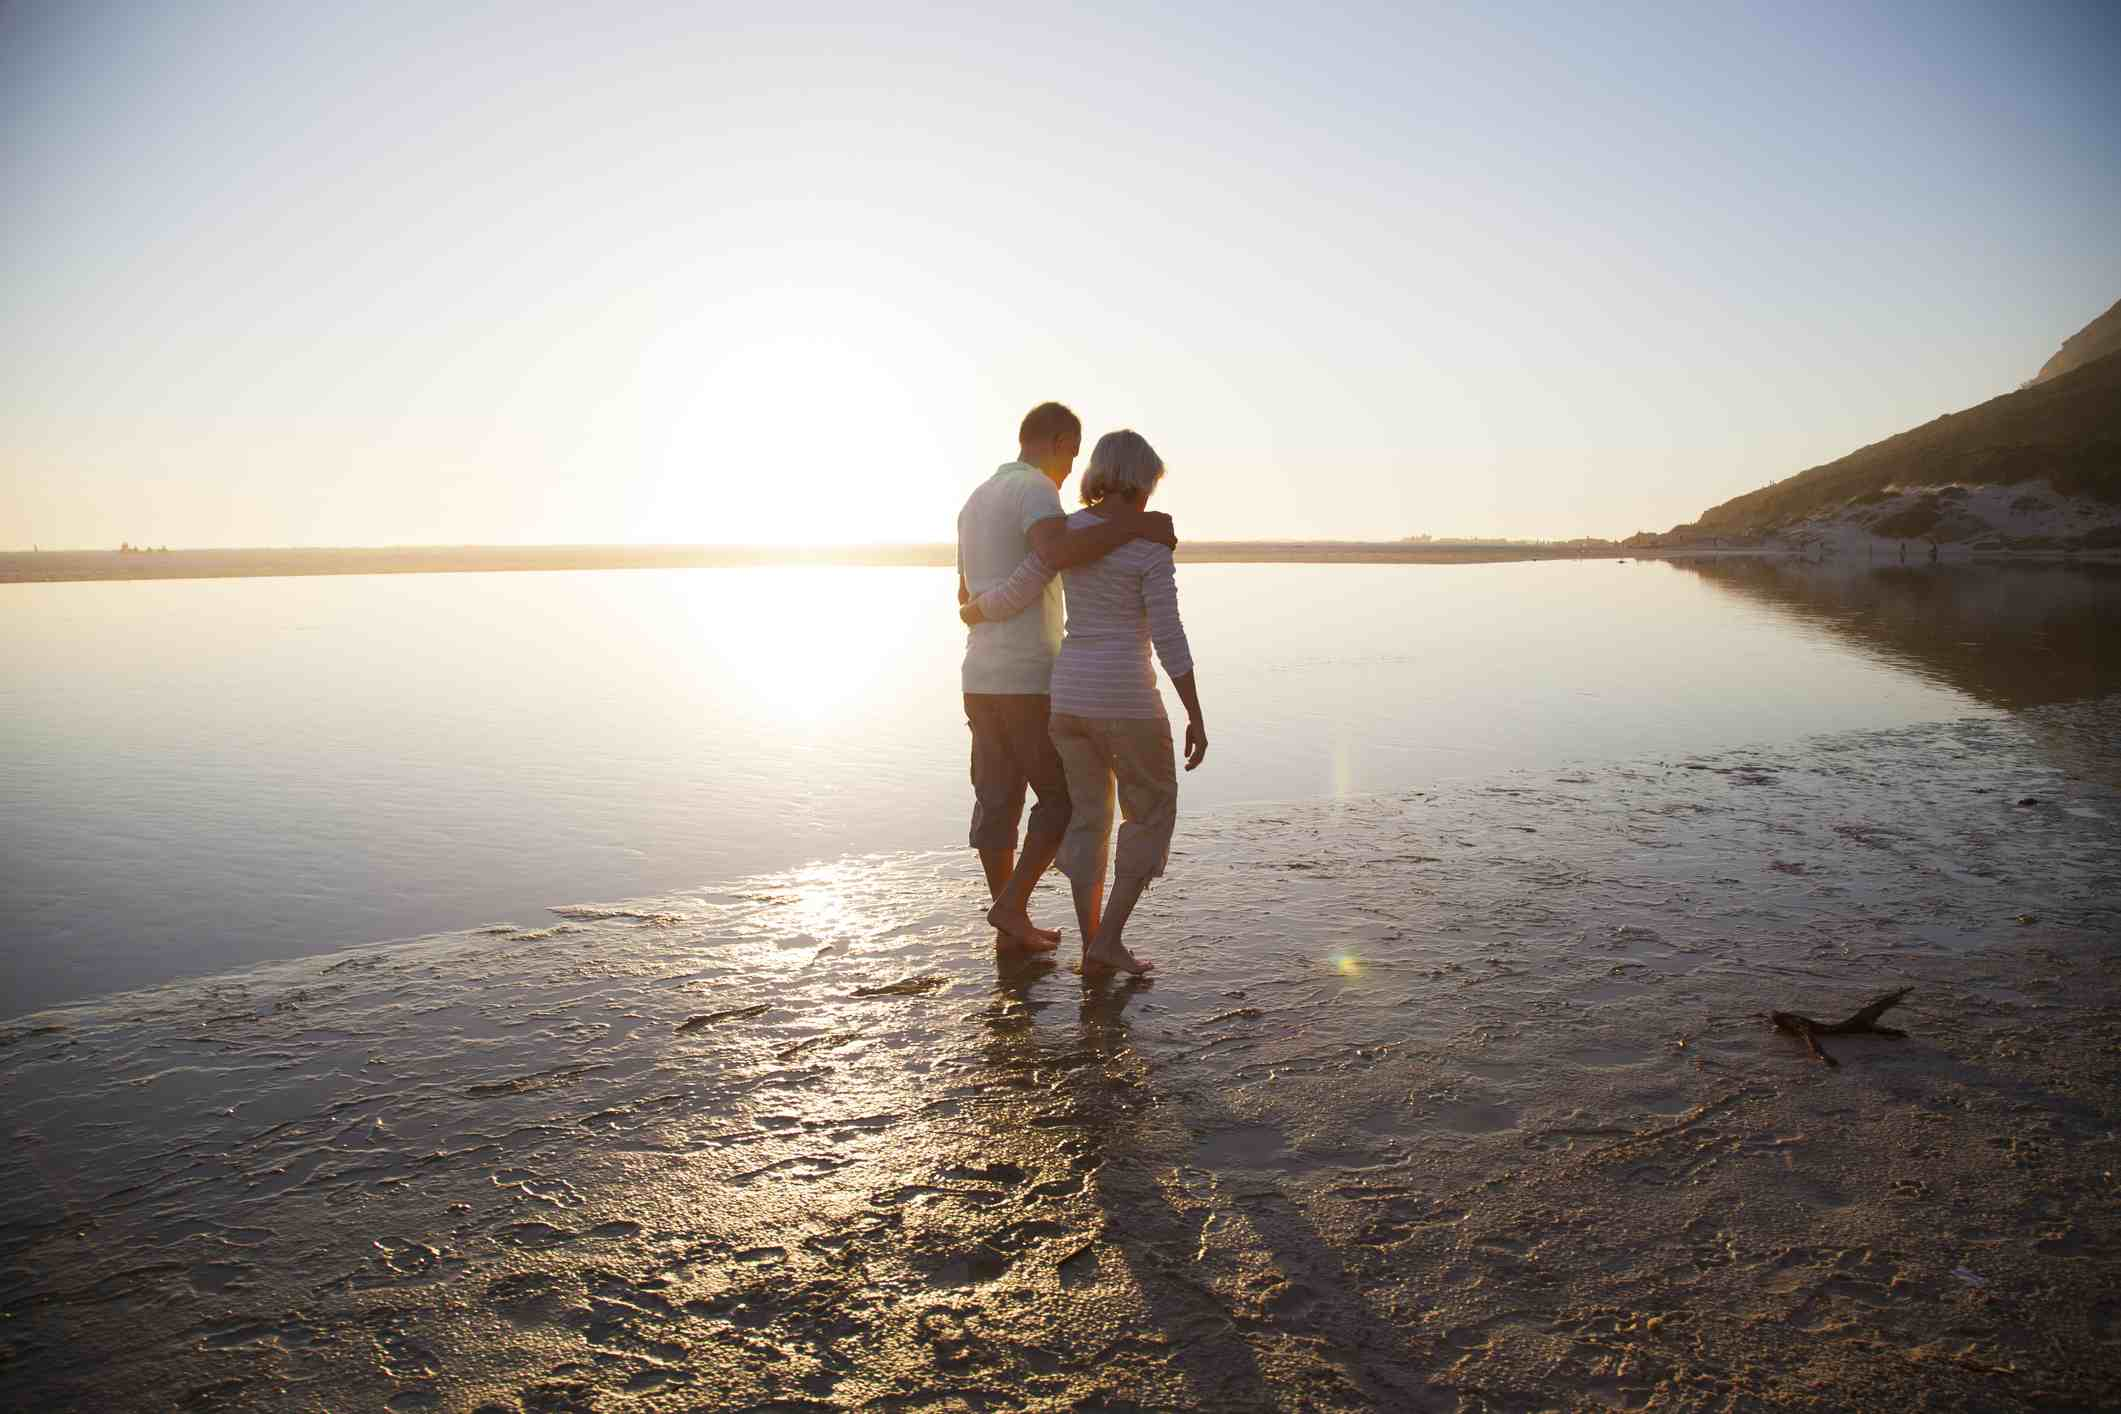 A couple walks on a quiet beach at sunset